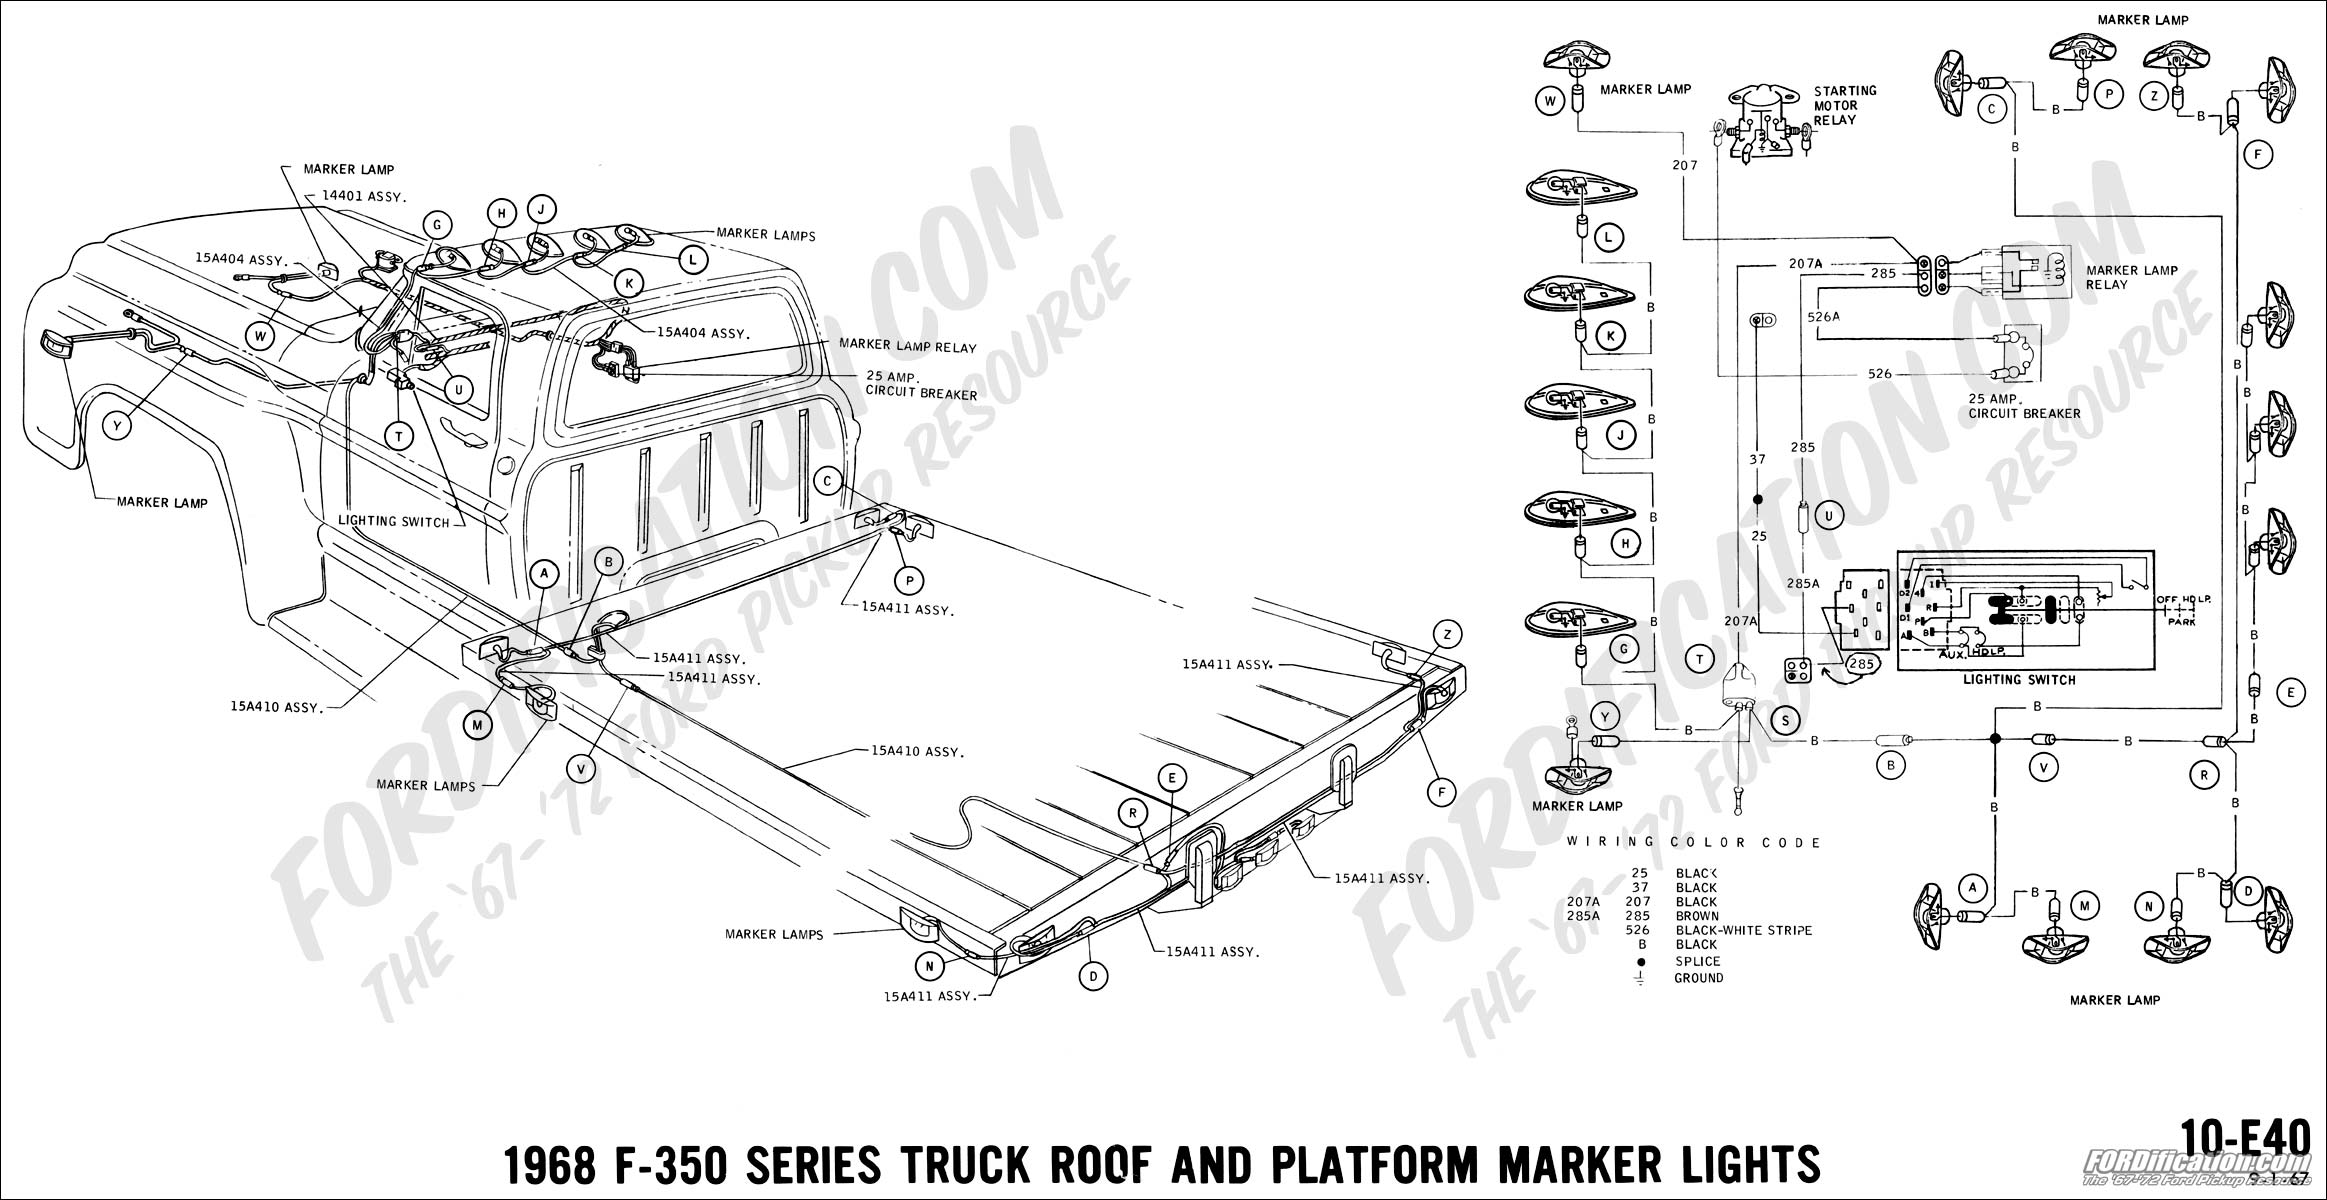 99 Peterbilt 379 Wiring Diagram | Schematic Diagram on